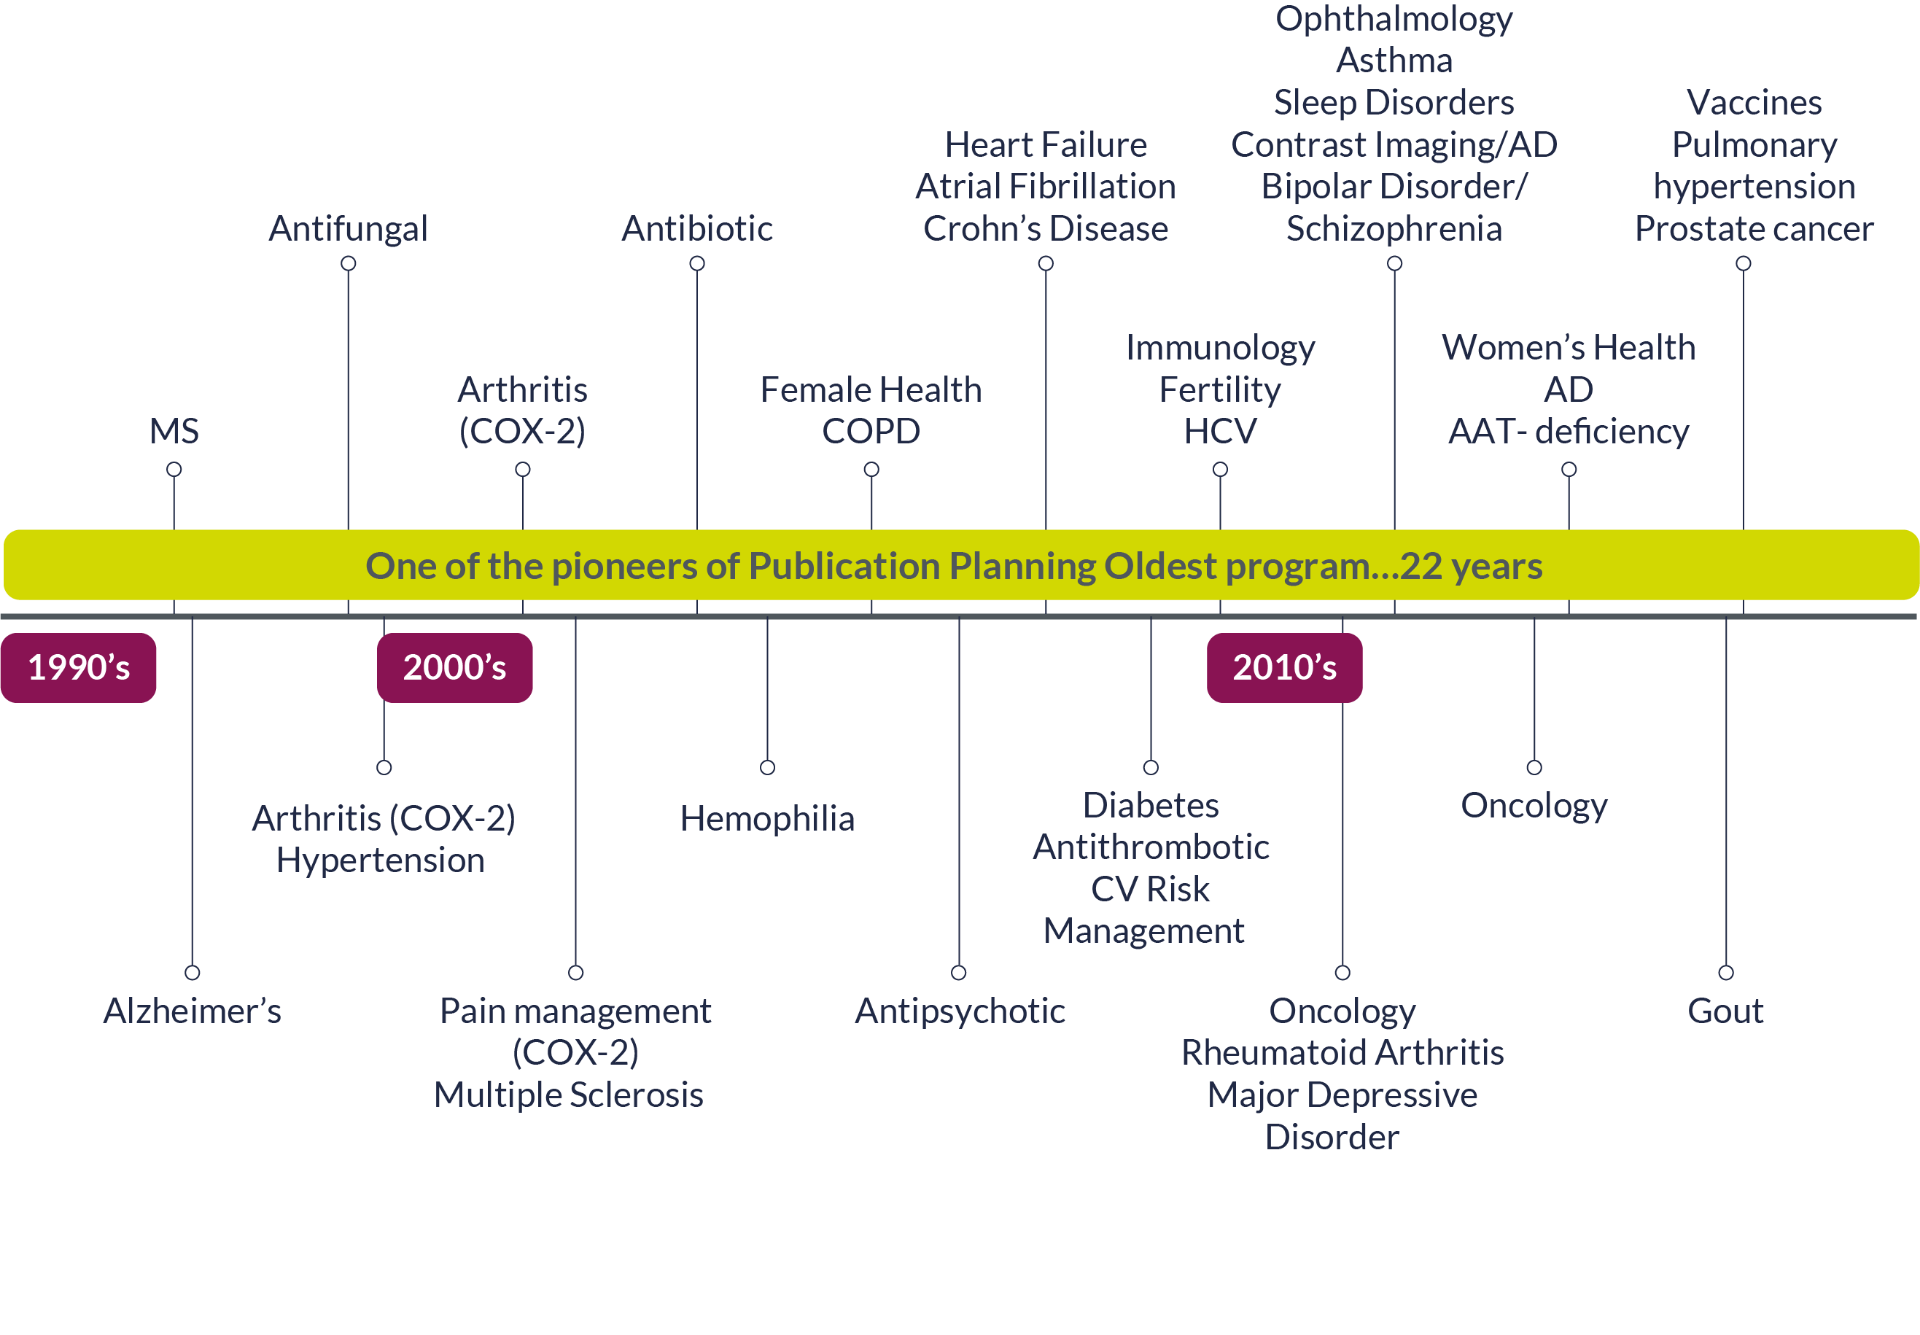 Detailed timeline of Parexel's 20 plus years of pharmaceutical publications planning experience.